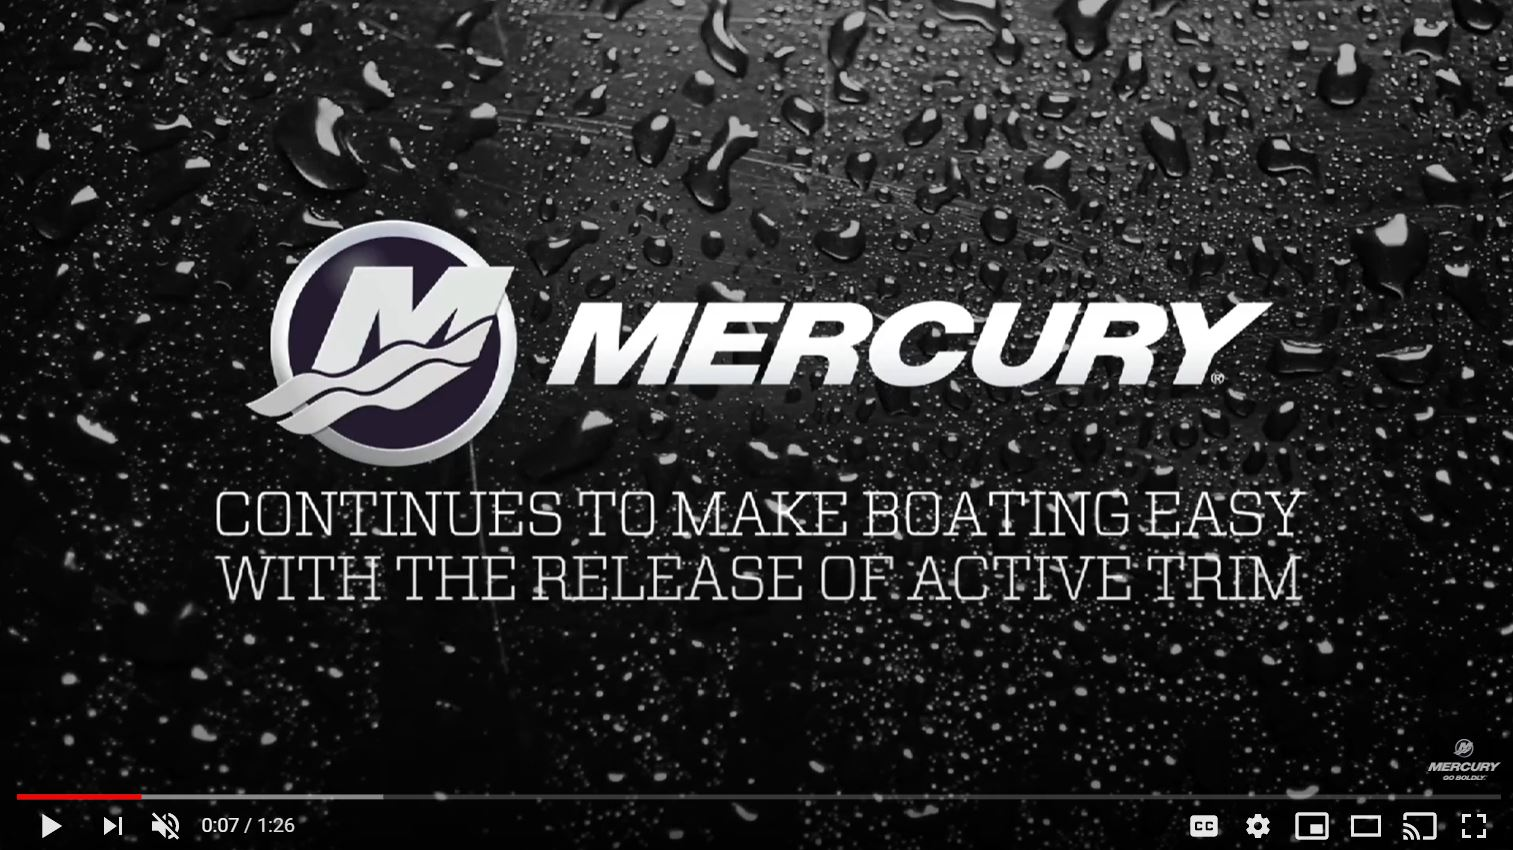 Mercury Marine's Active Trim is making boating easier and safer